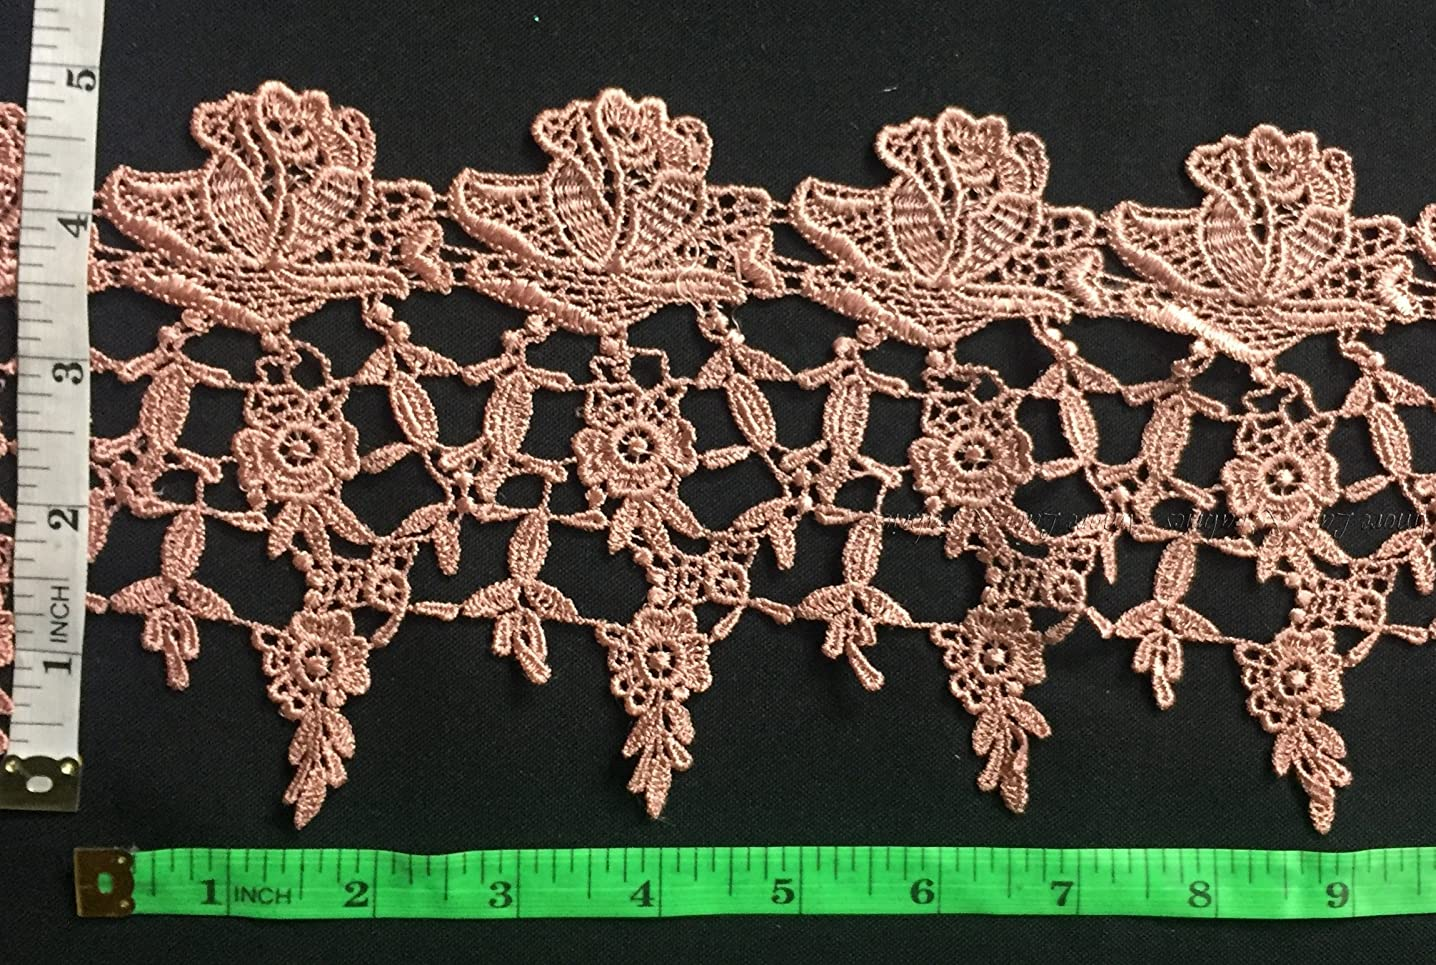 Lace Trim Classic Rose Garden Design, 5